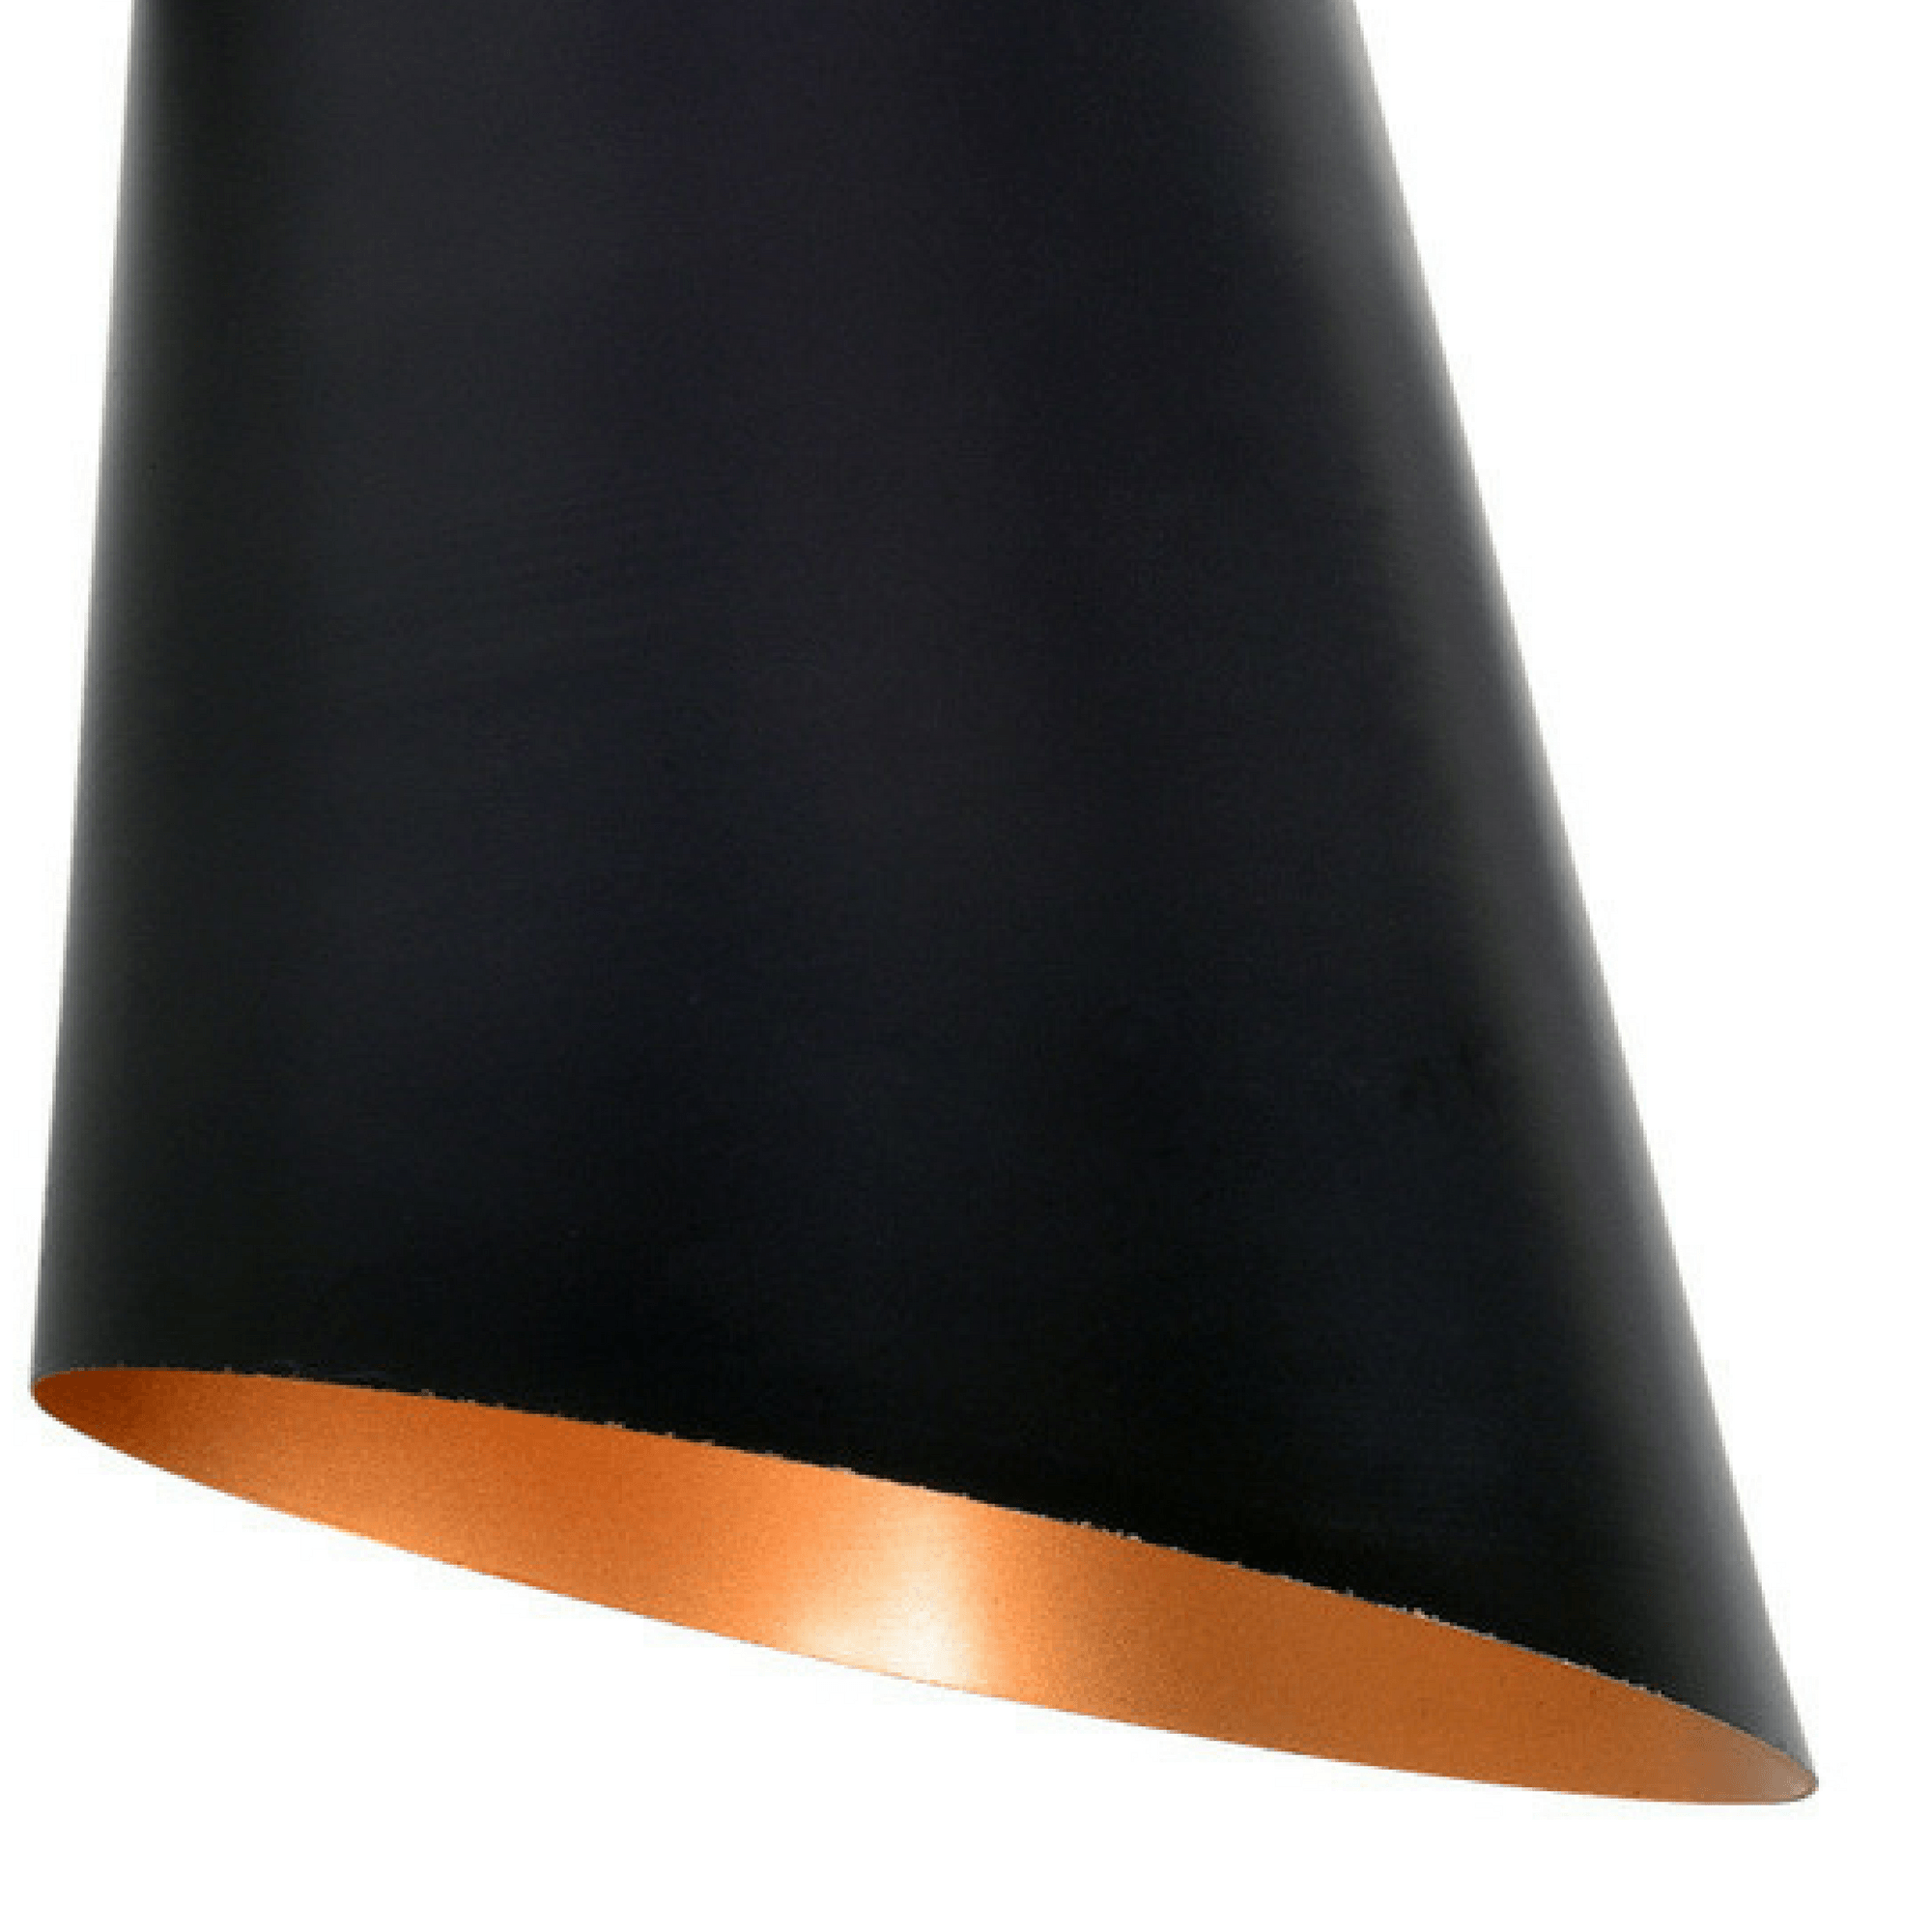 Theo 1 Light Wall Sconce